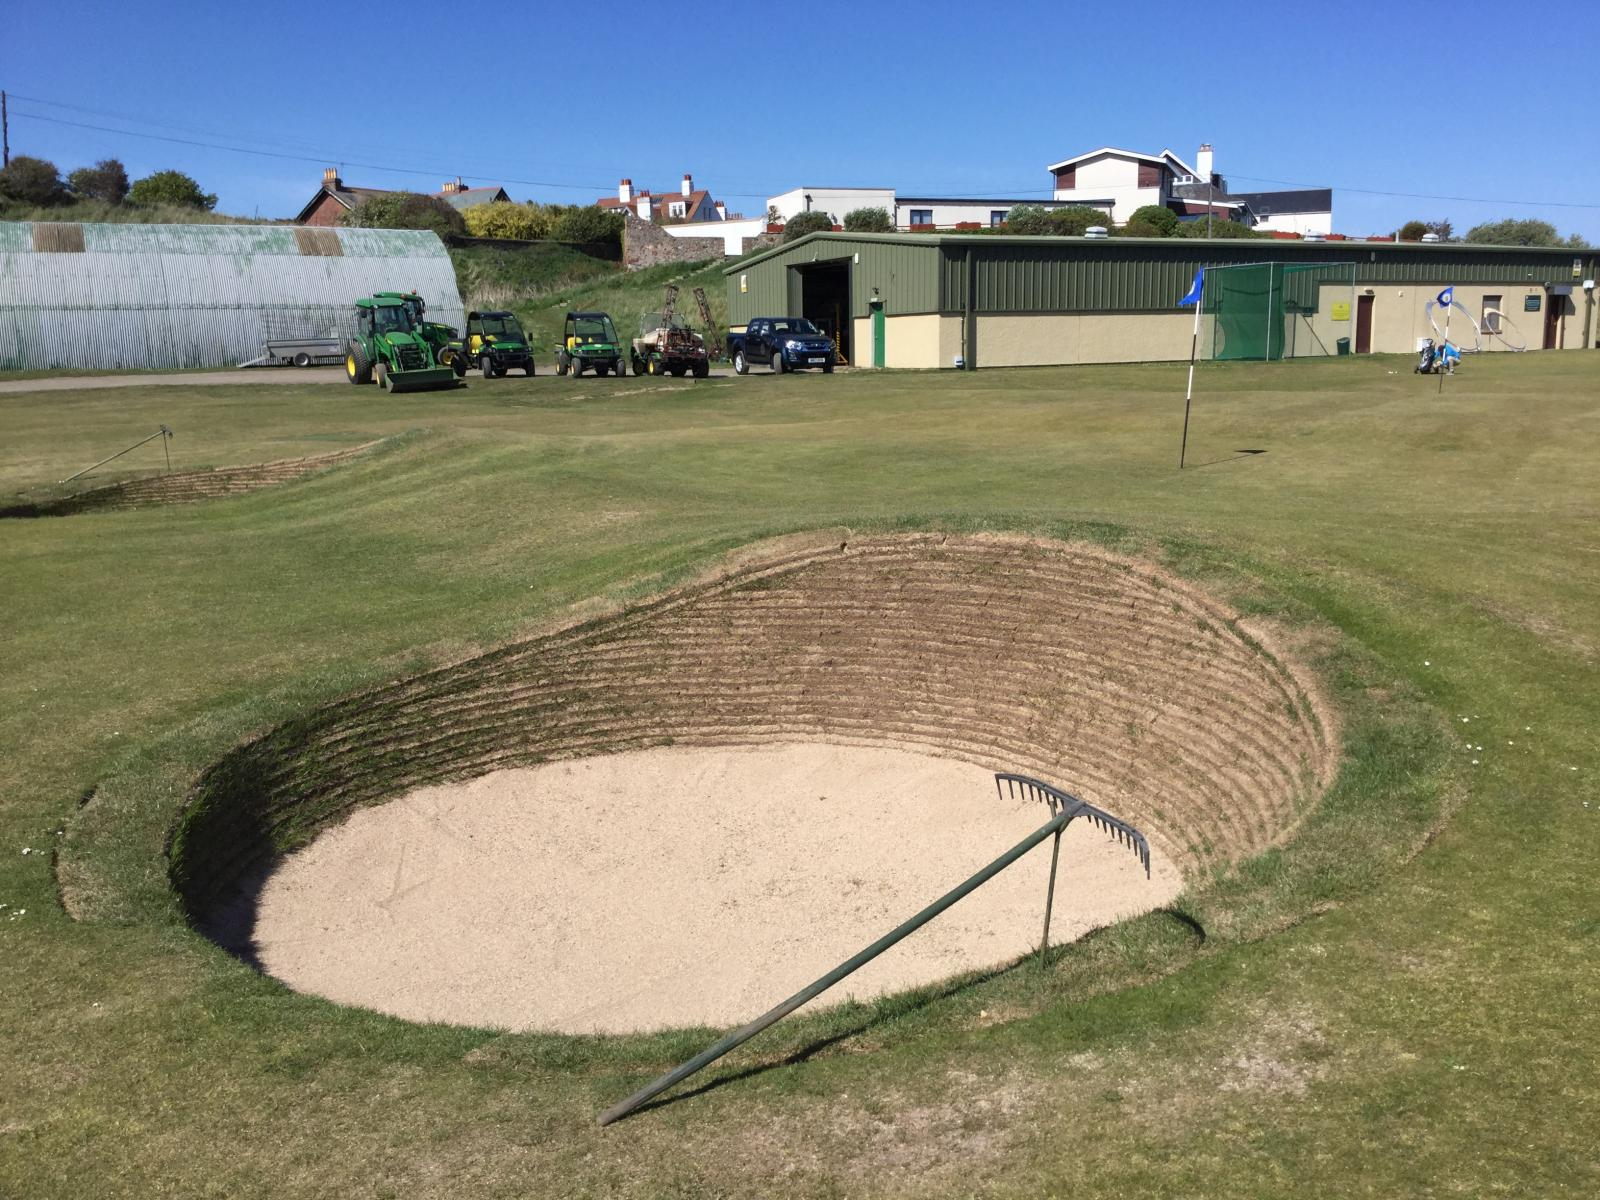 A deep links bunker